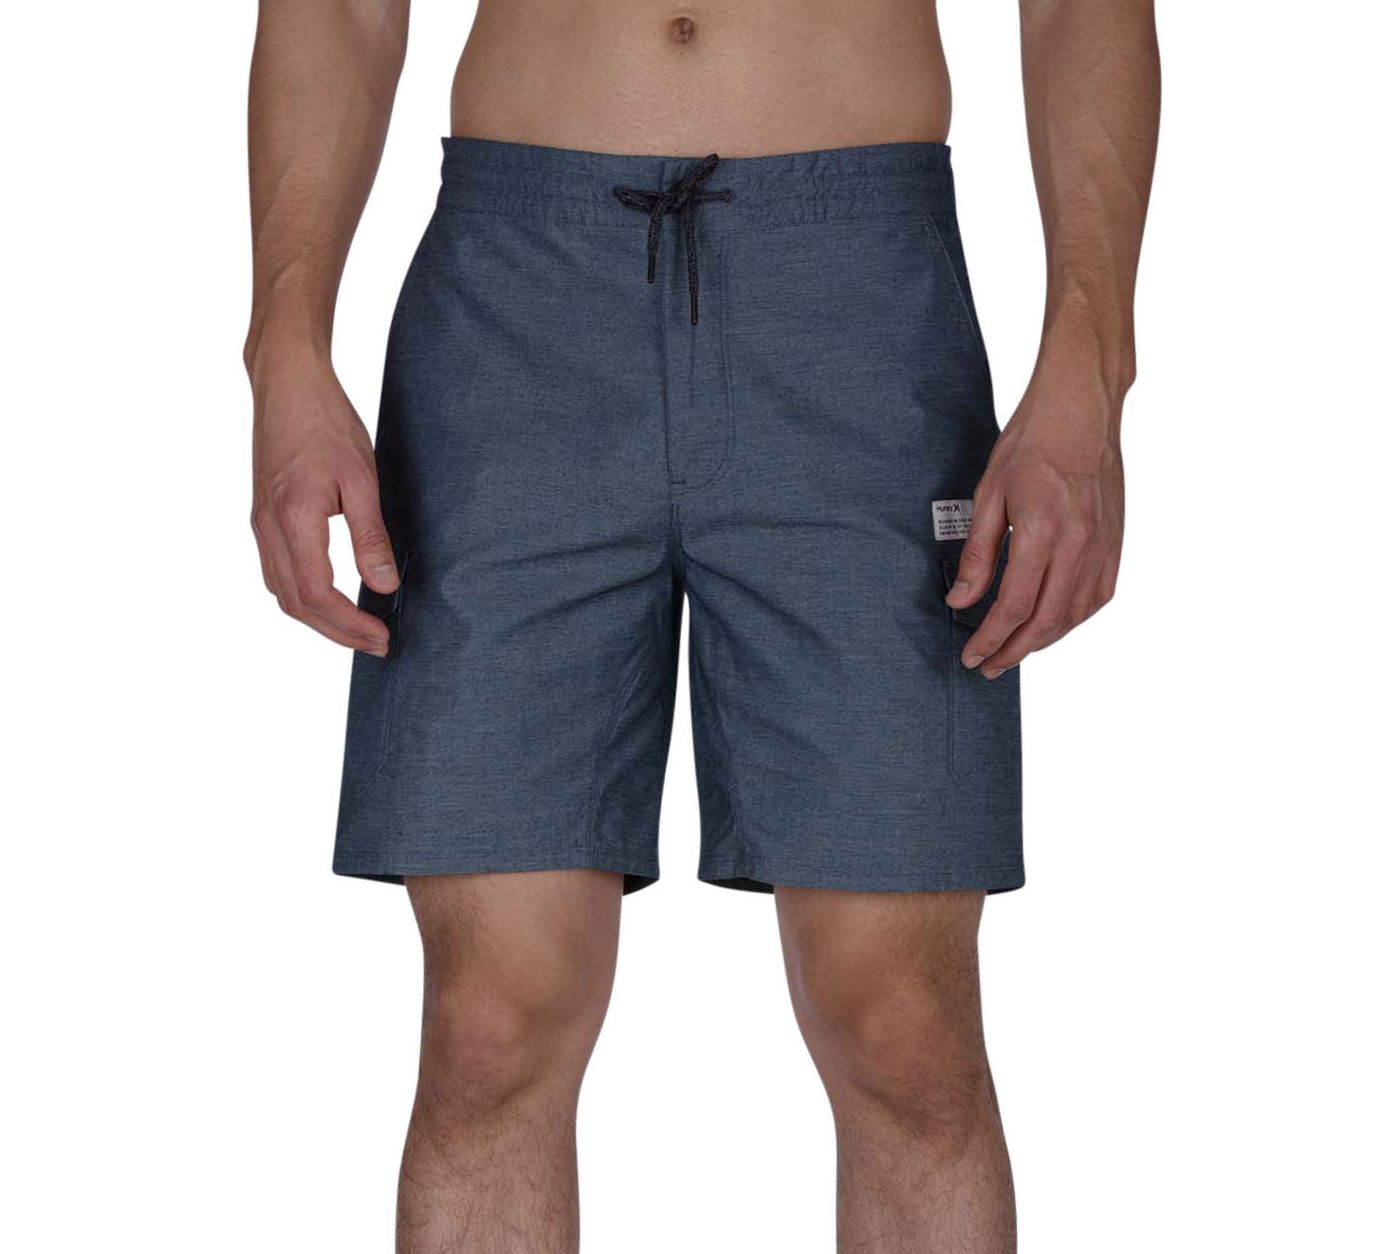 Hurley Men's Dri-FIT Breathe Cargo Shorts